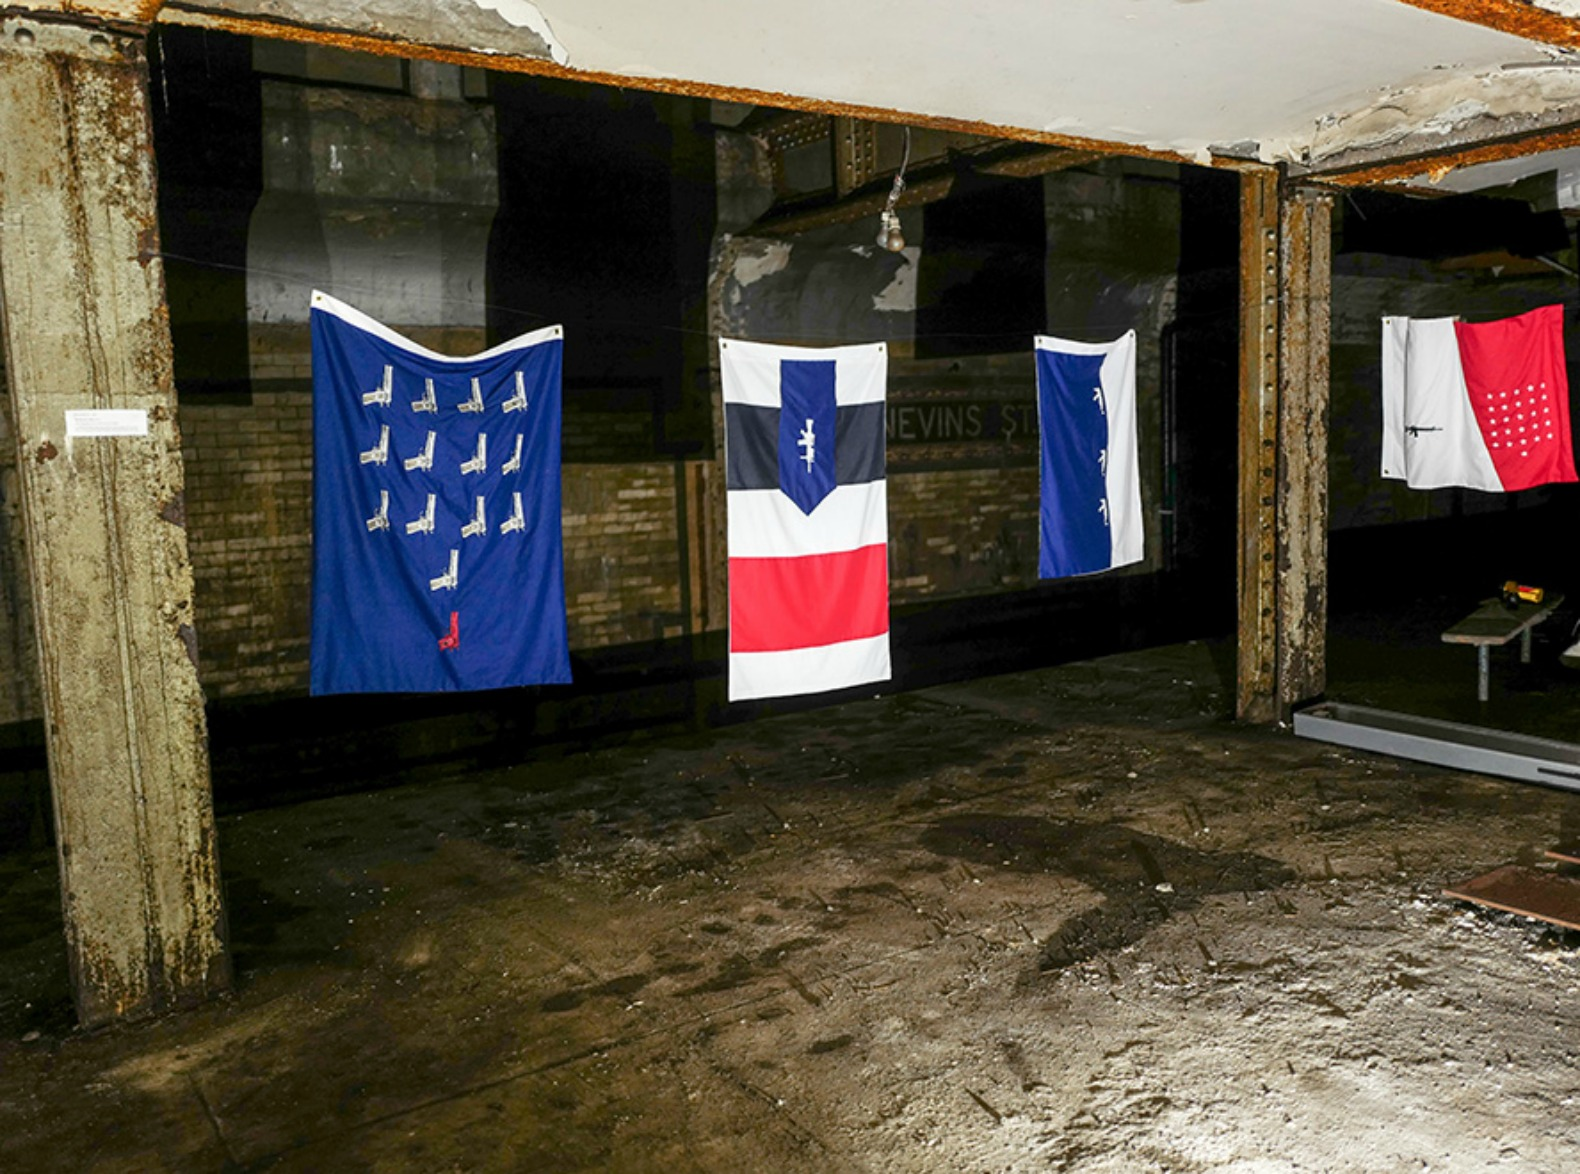 Secret art in abandoned subway tunnel makes statement about gun violence